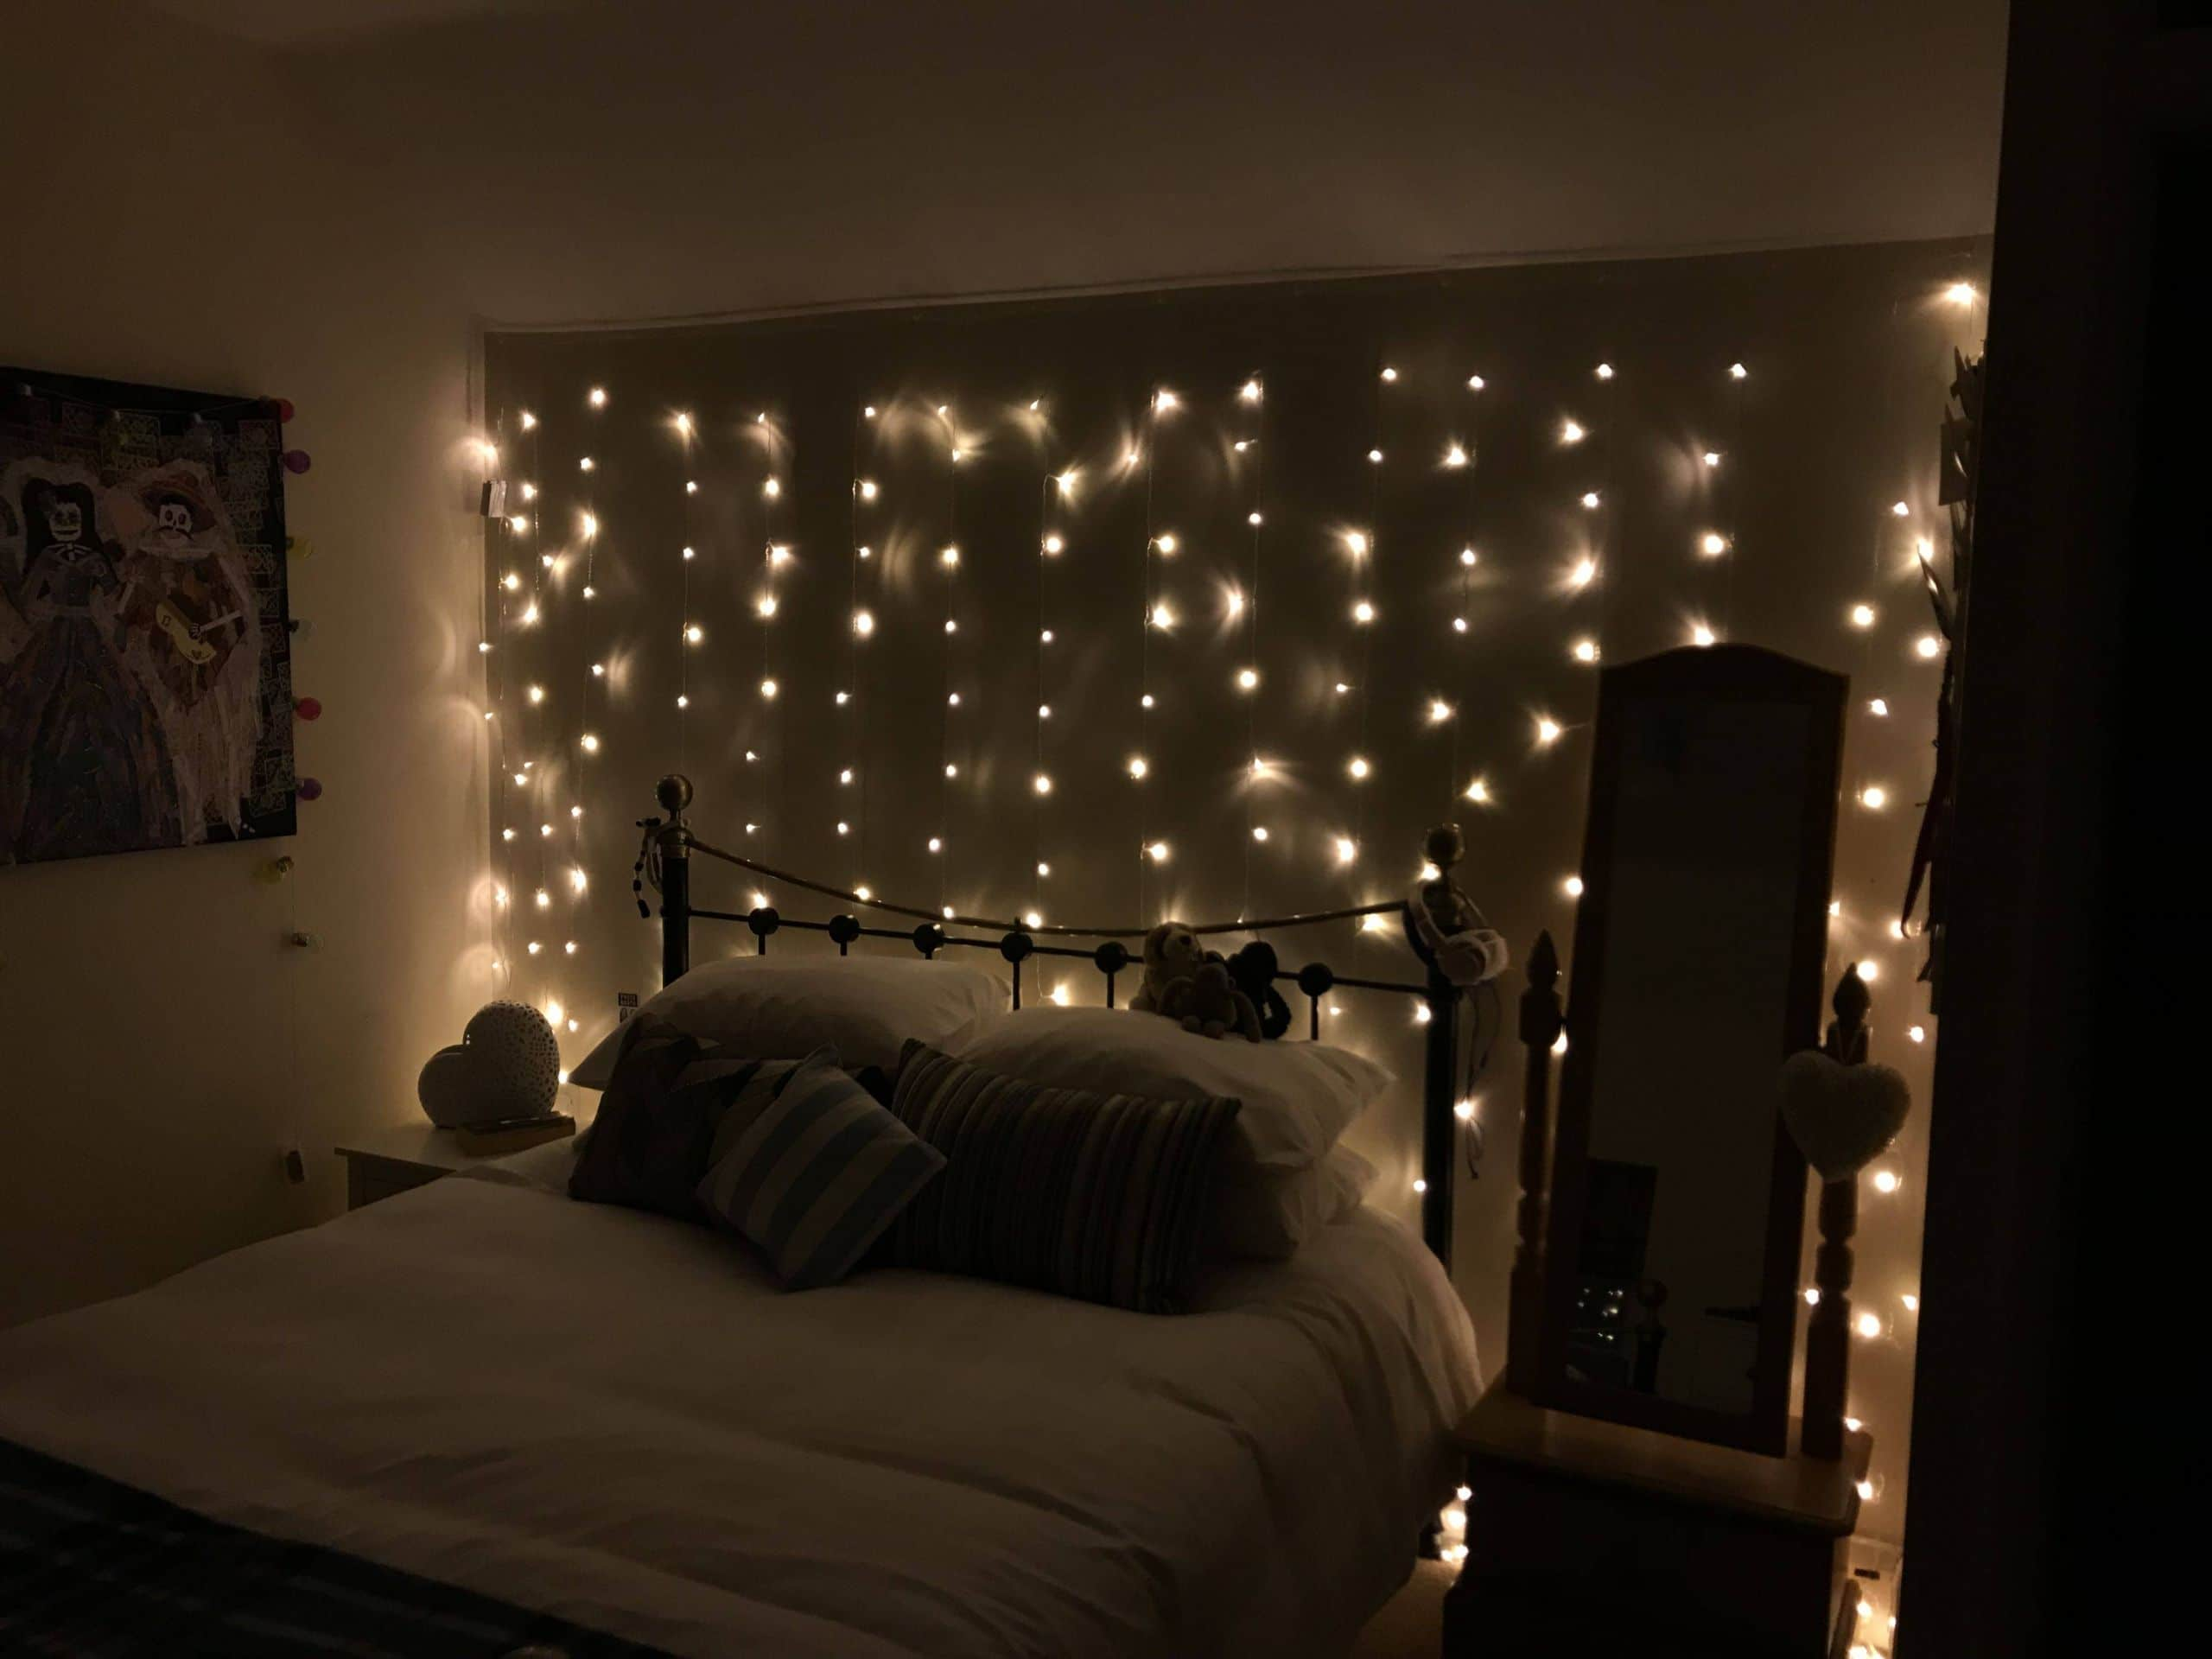 Fall Cozy and Aesthetic Lights Teen Bedroom Best Of Fall Cozy and Aesthetic Lights Teen Bedroom